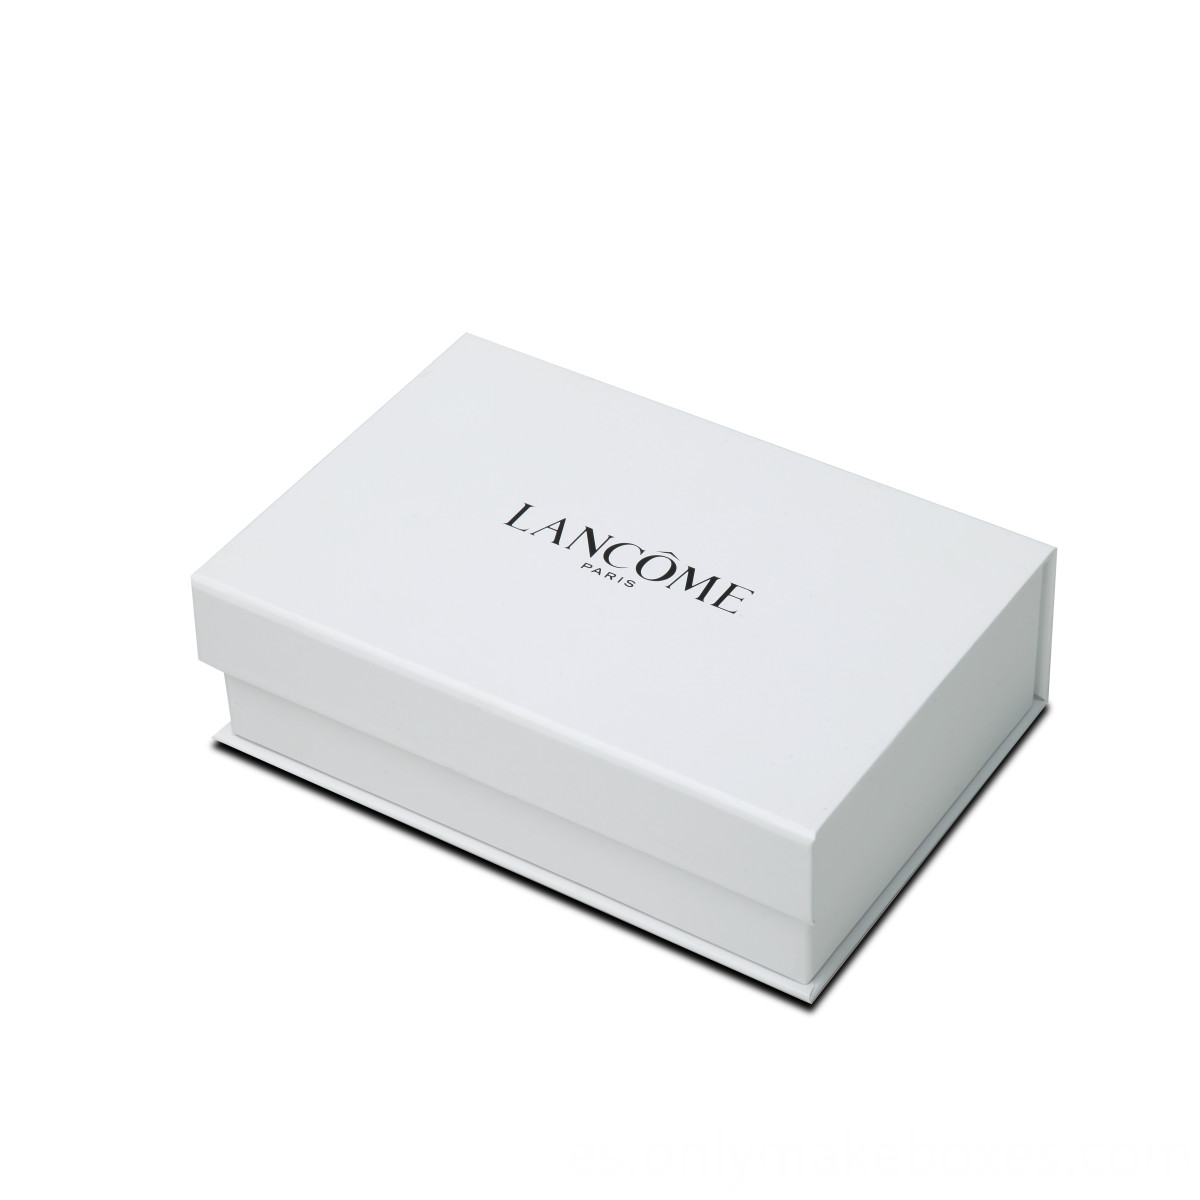 Lancome Collapsible Box with side way folding